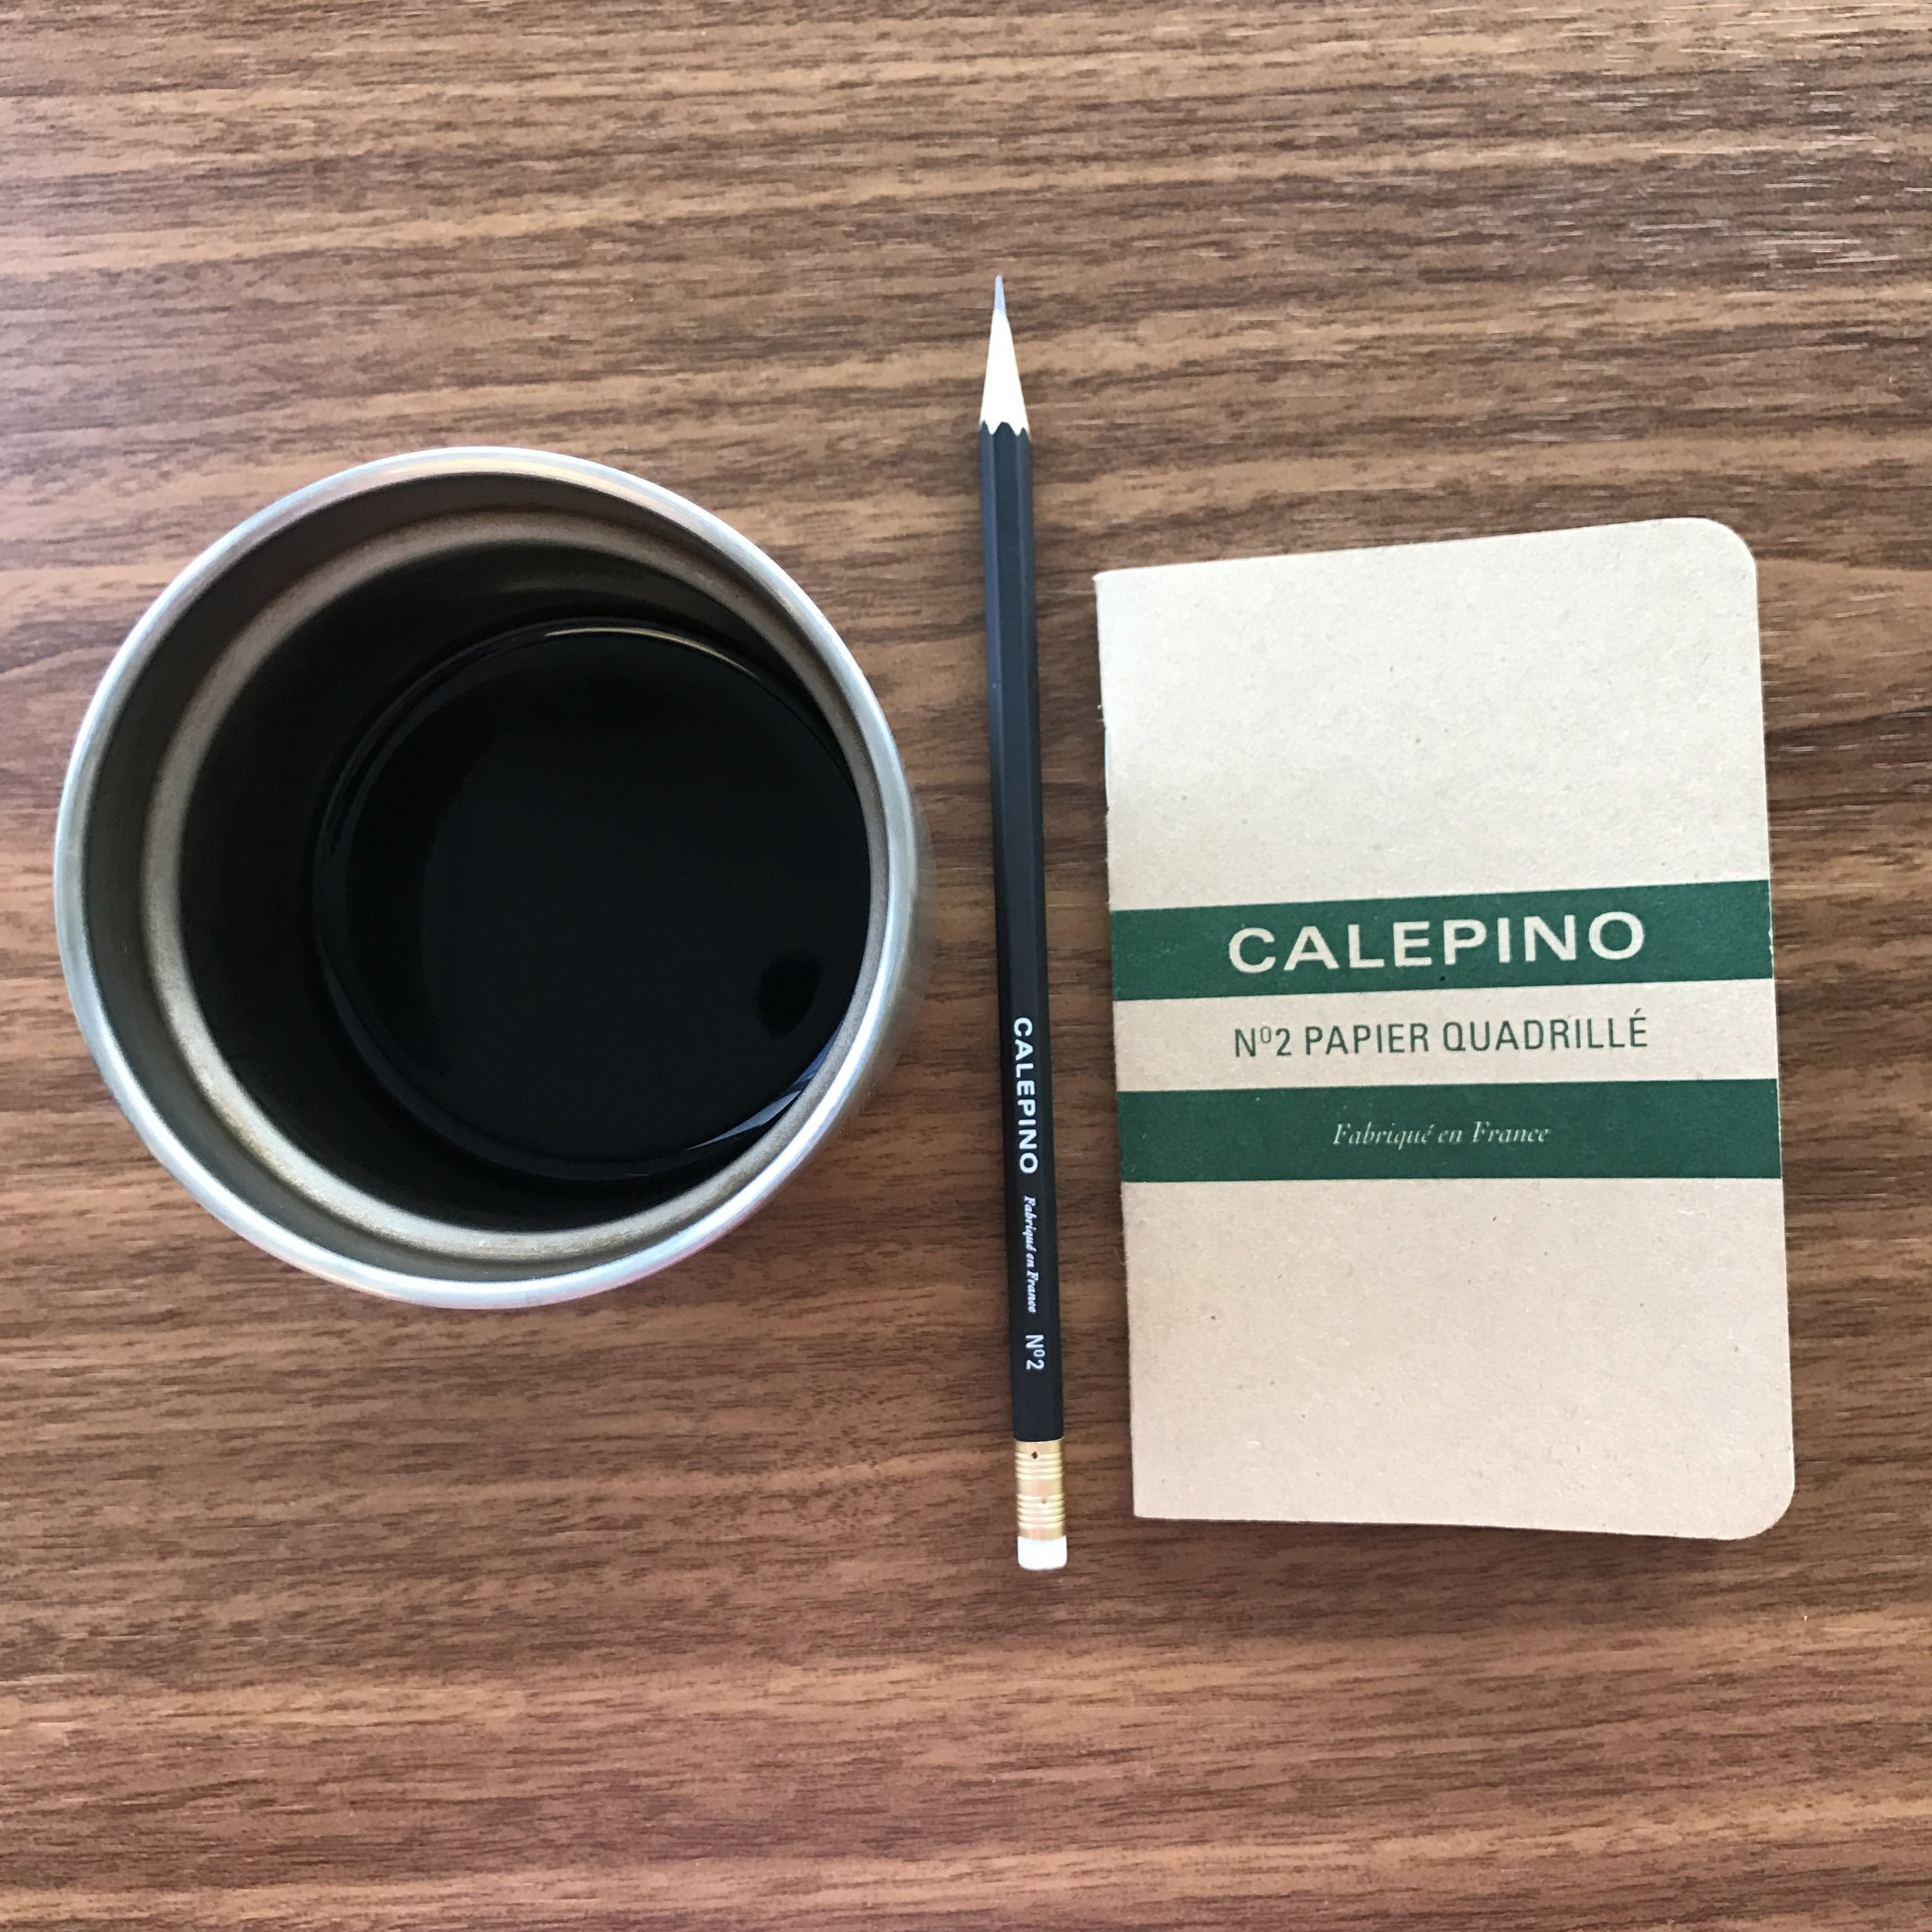 My morning companions: Calepino Graph Paper Notebook and a Calepino Pencil (and Coffee).